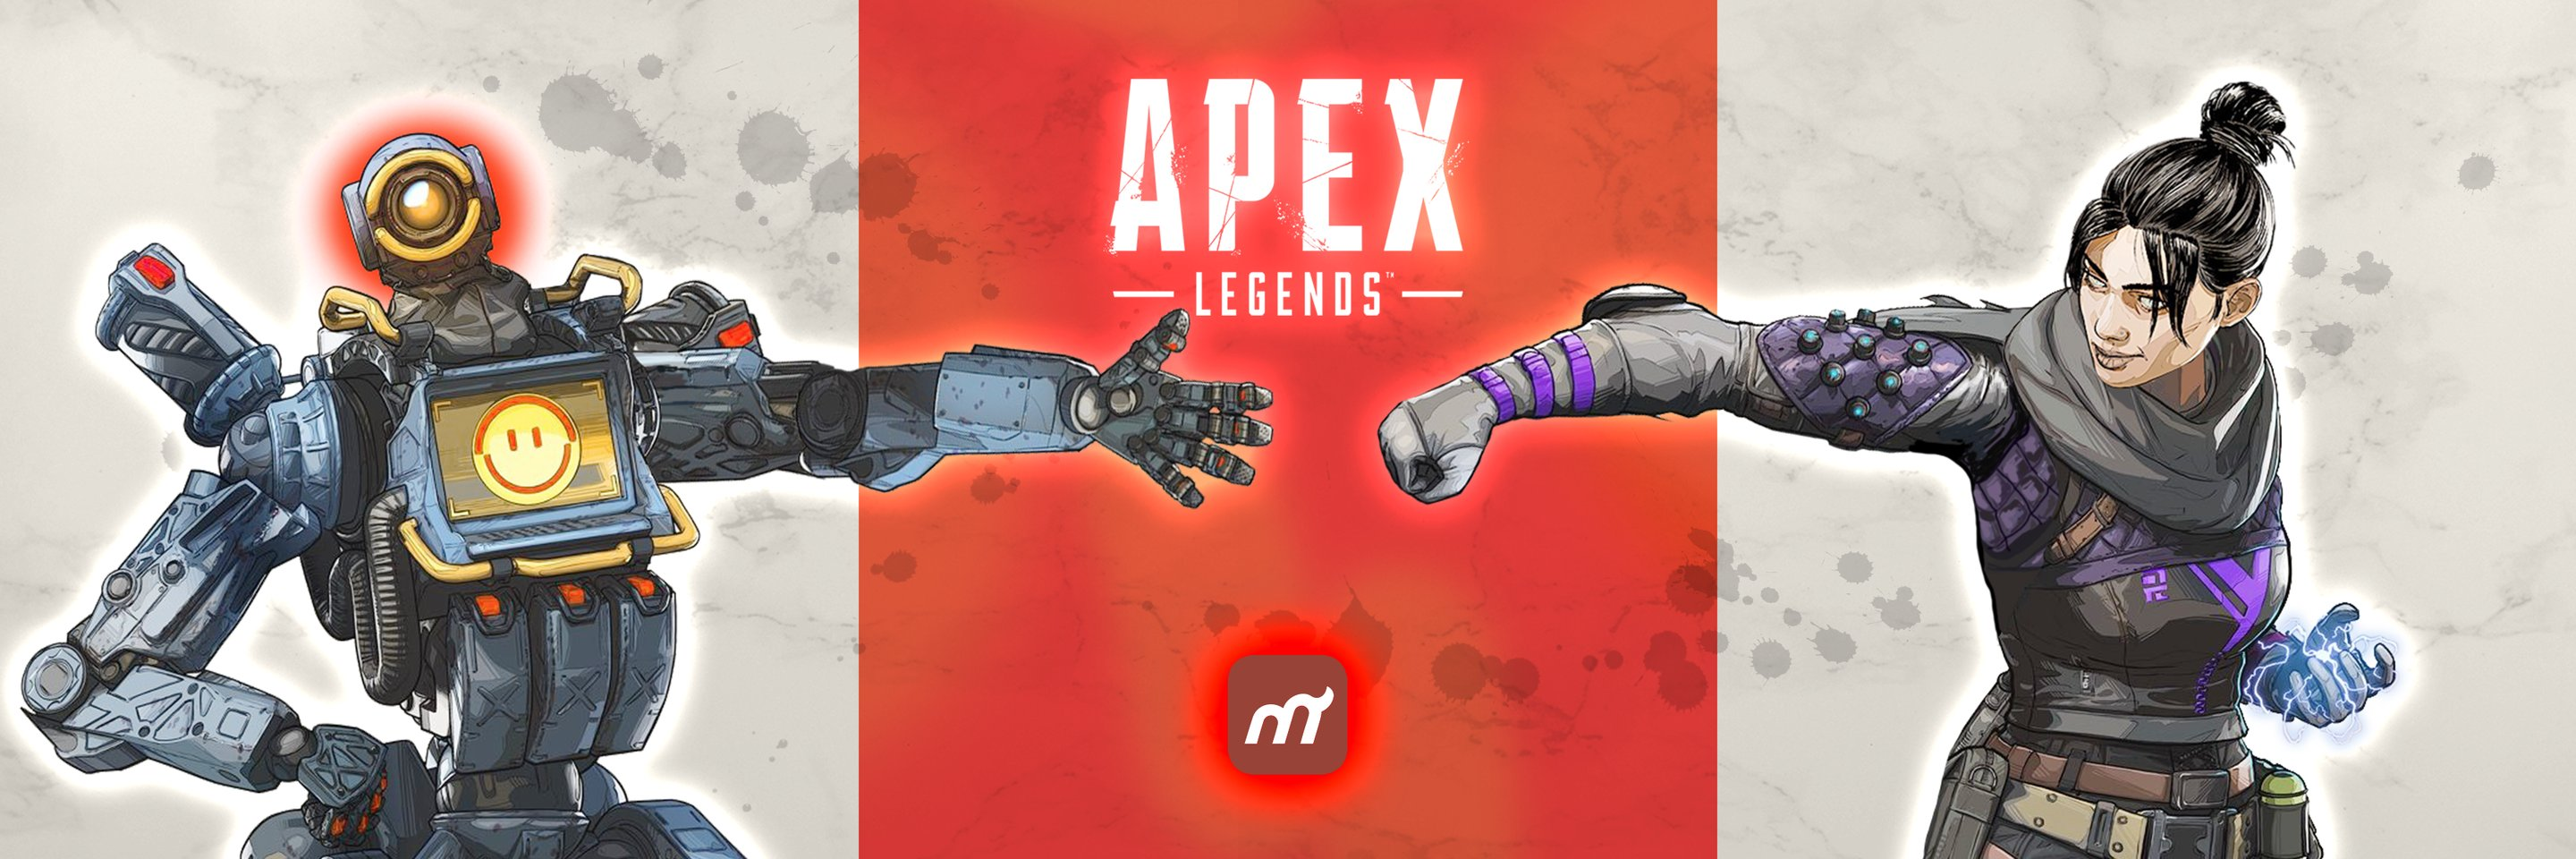 apex_legends.png